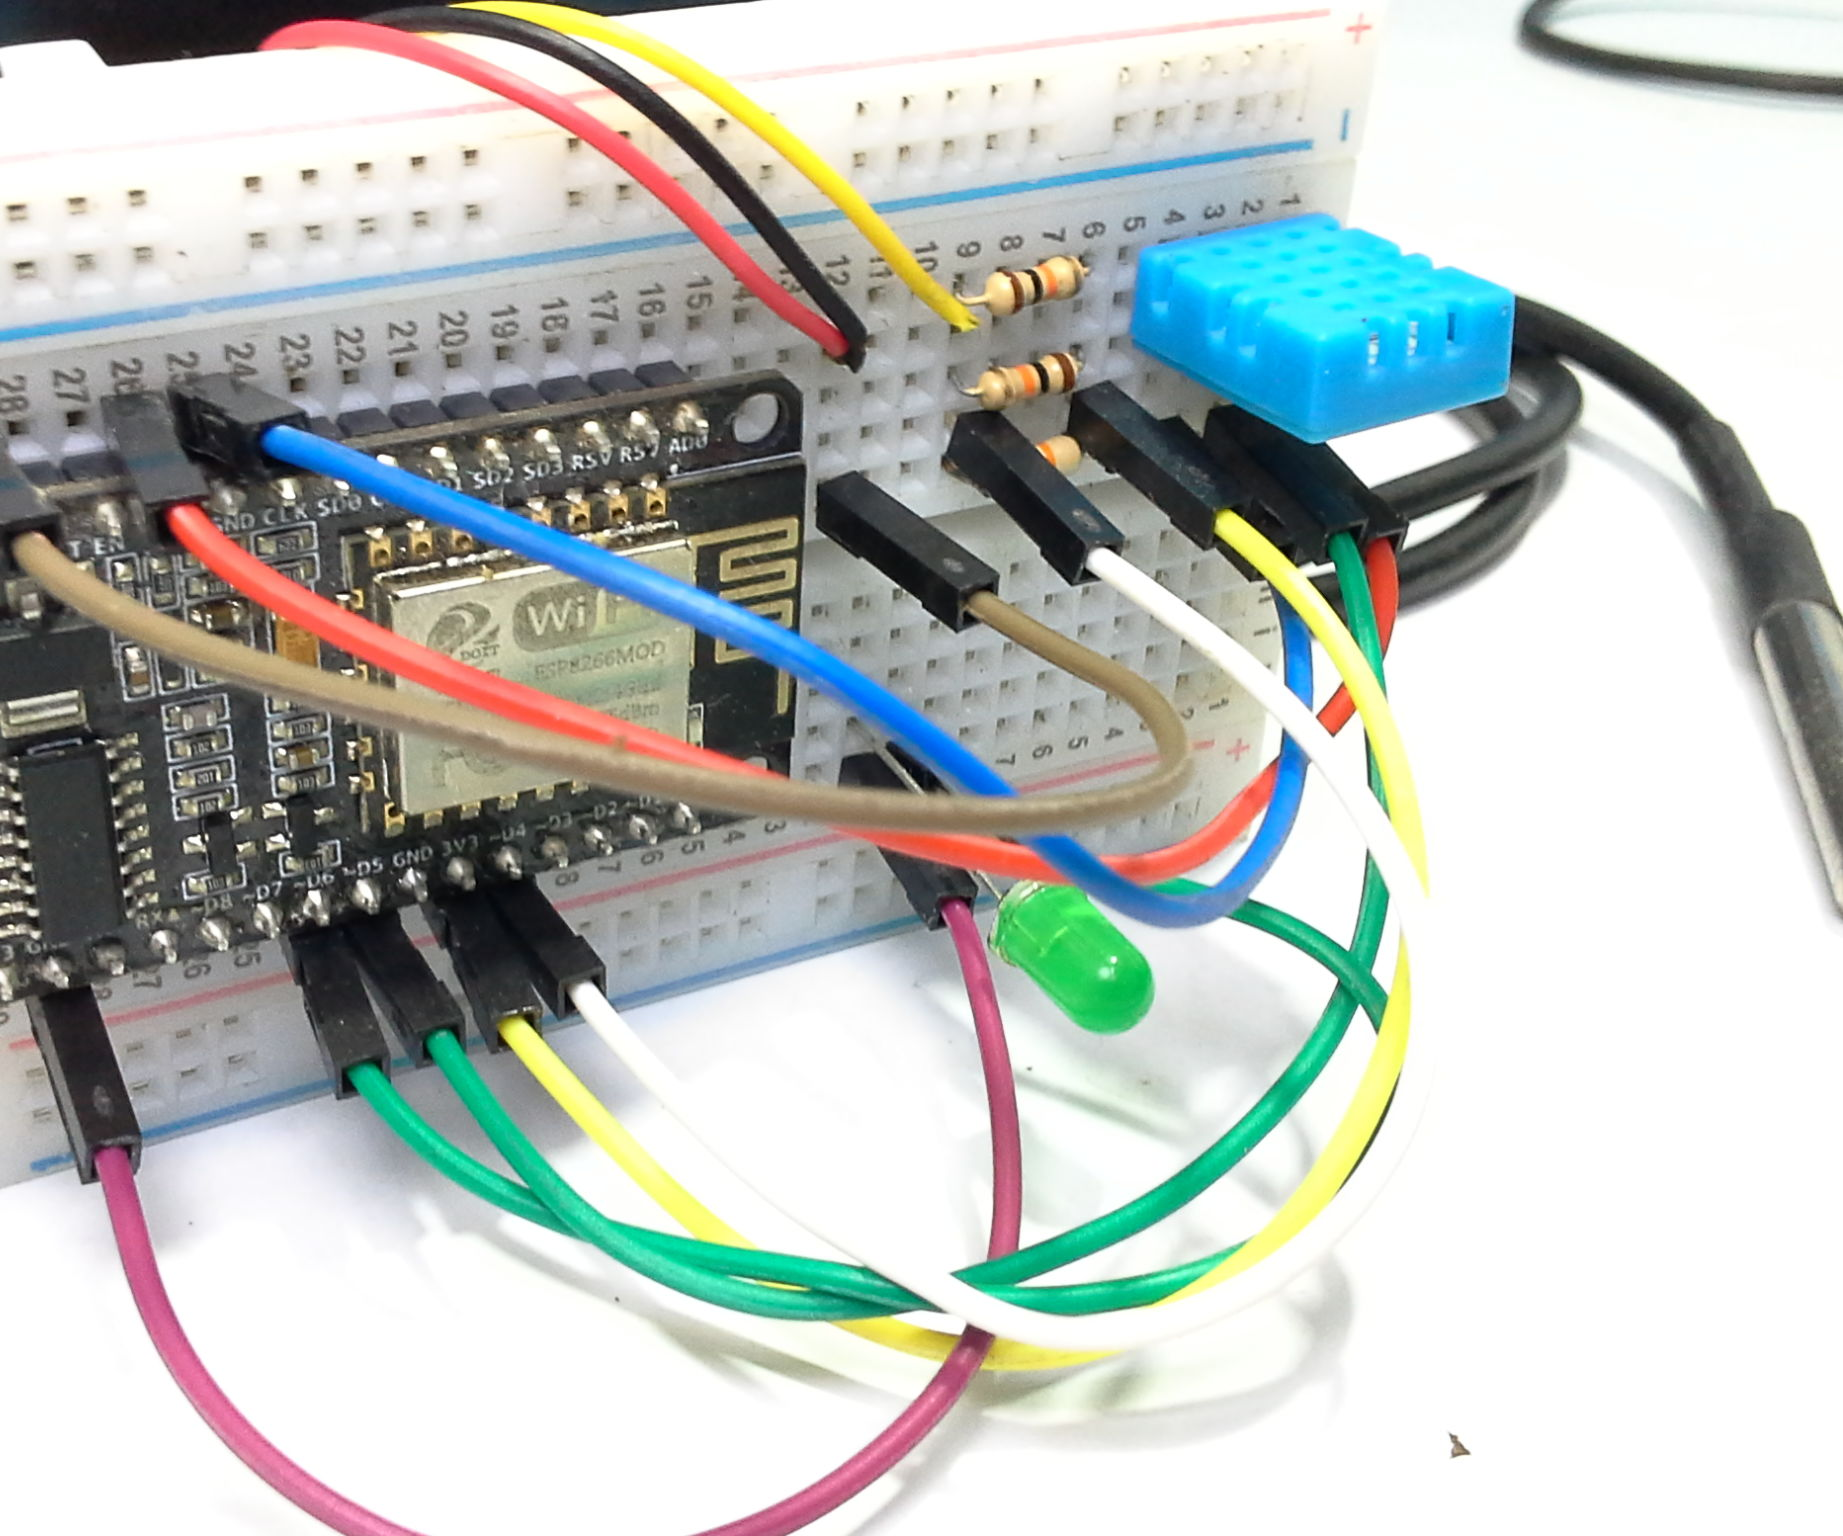 Control Your Esp6266 From the Internet? Free and Easy